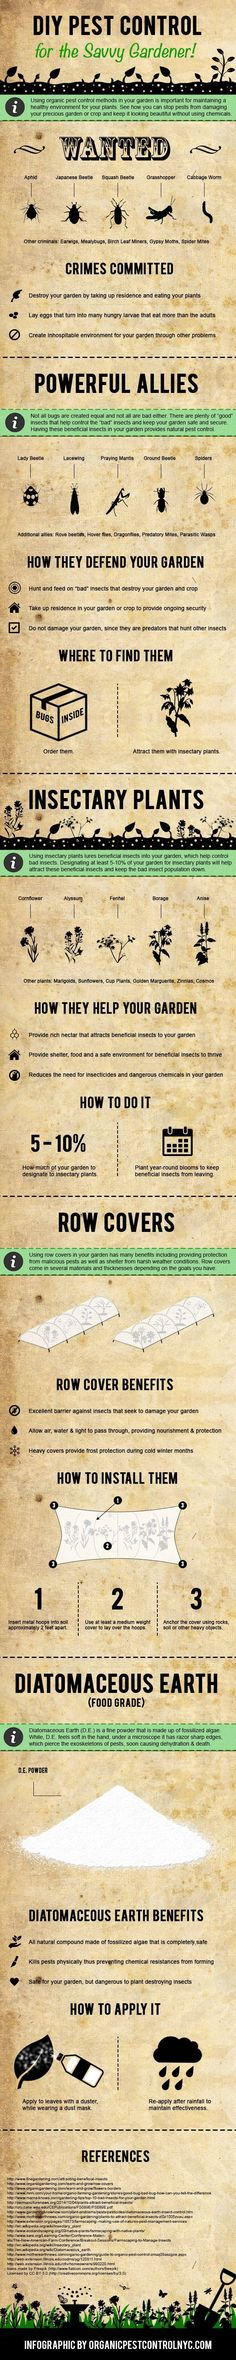 DIY Pest Control for the Savvy Gardener! #infographic #DIY #PestControl #Gardening